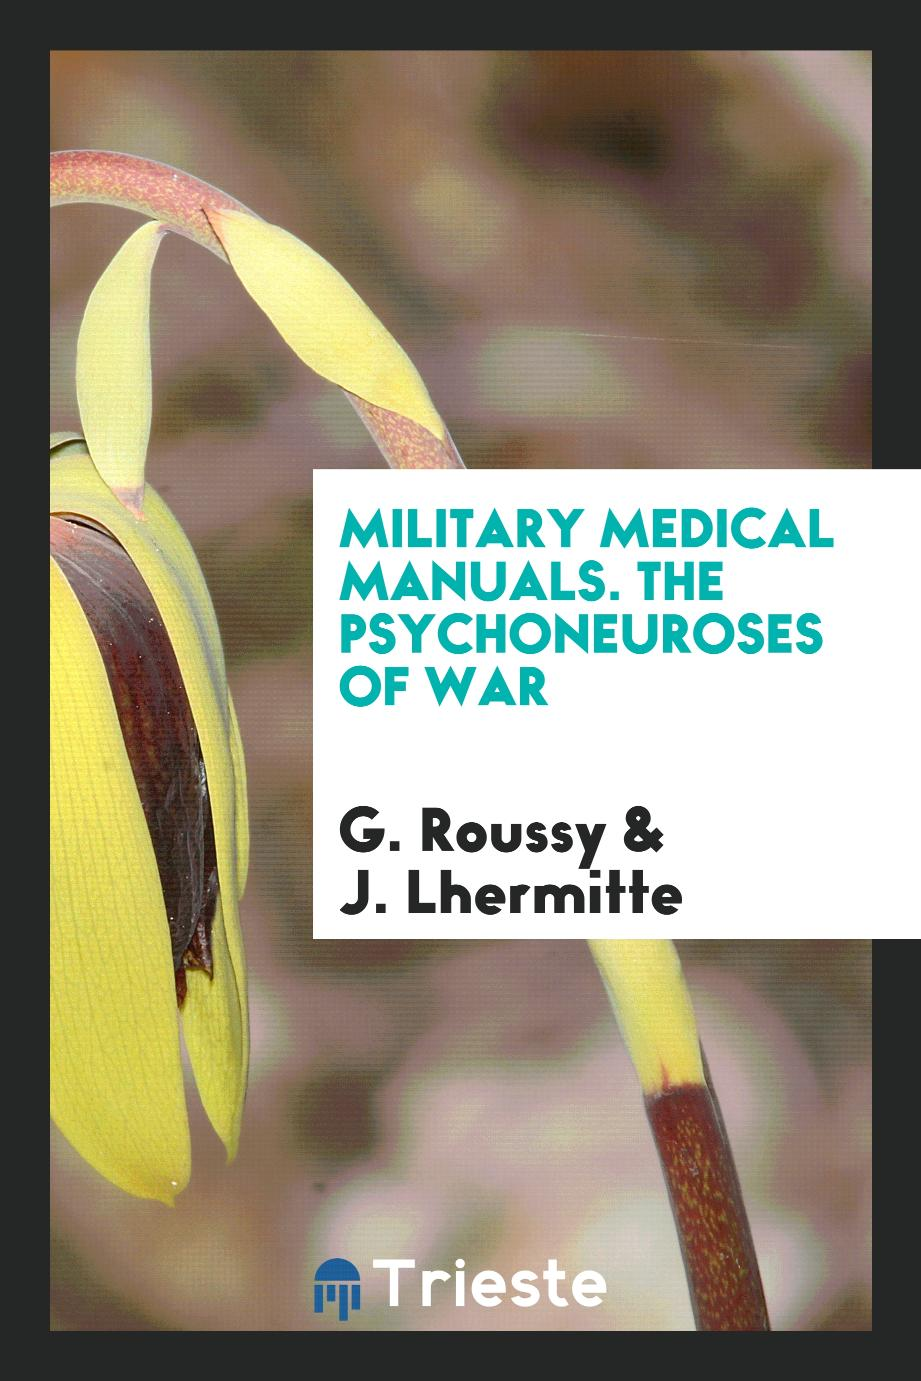 Military Medical Manuals. The psychoneuroses of war